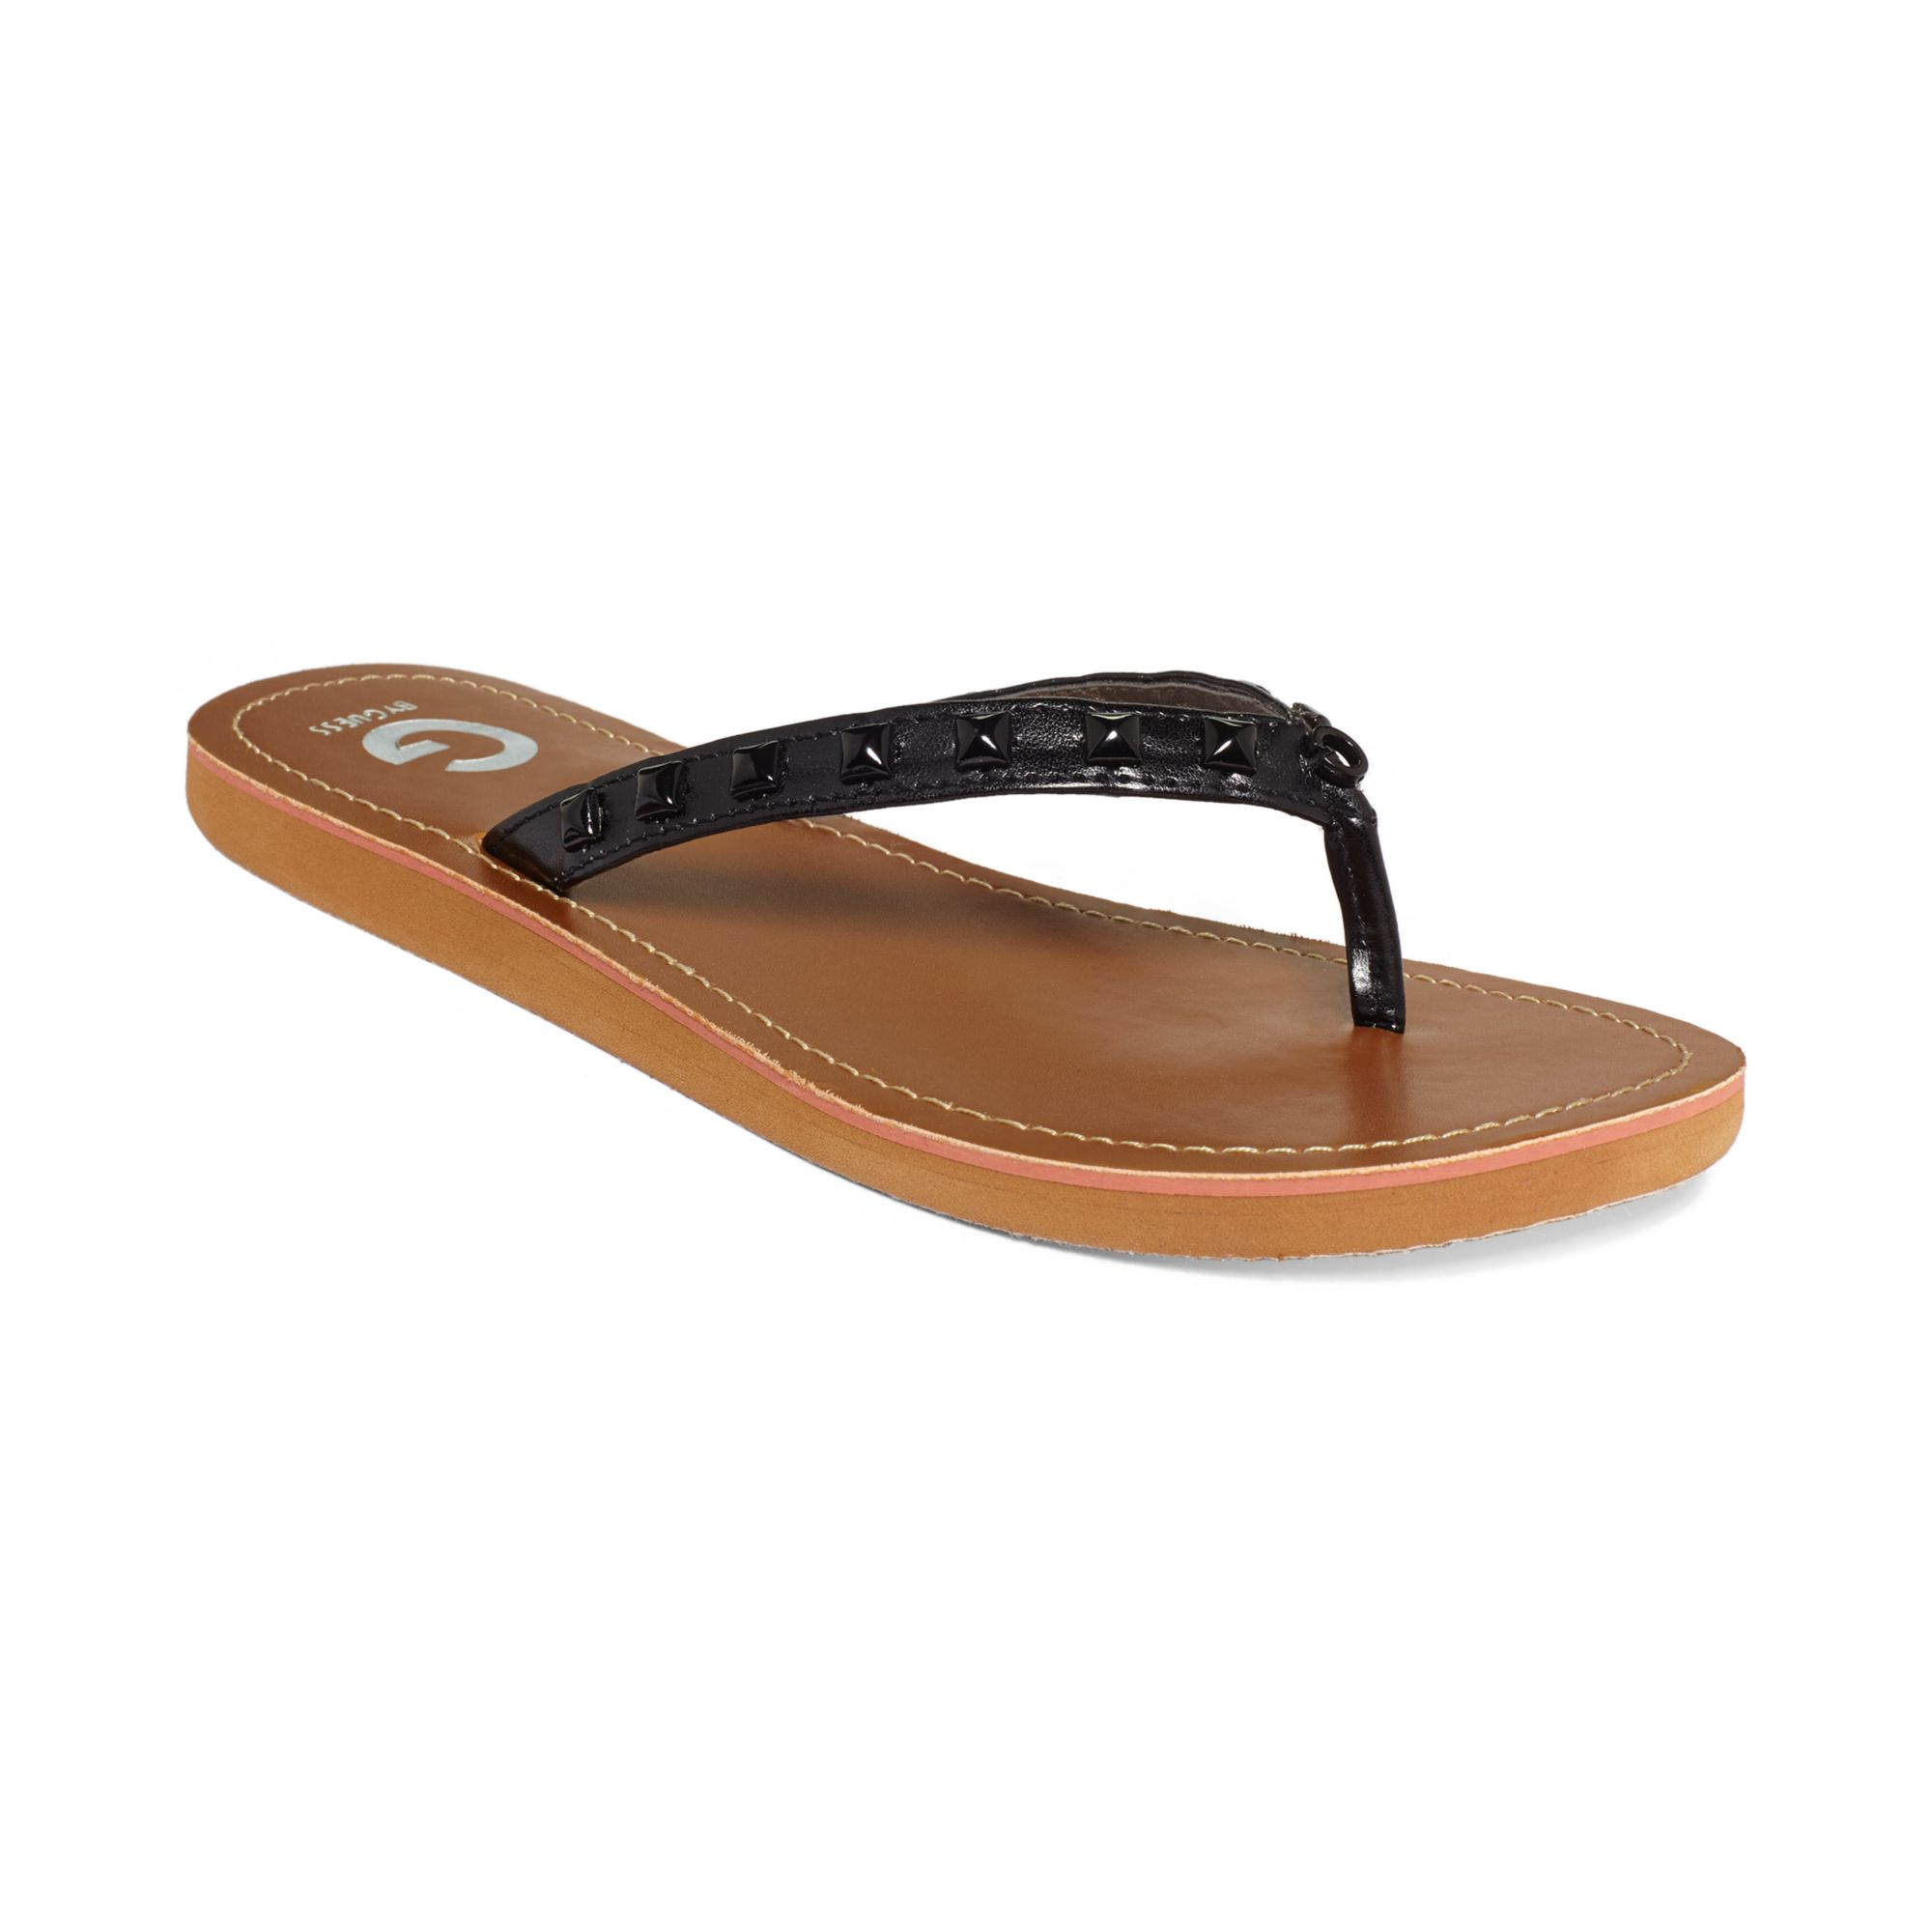 1753373d0b1e Lyst - G by Guess Womens Kendrah Studded Flip Flops in Black